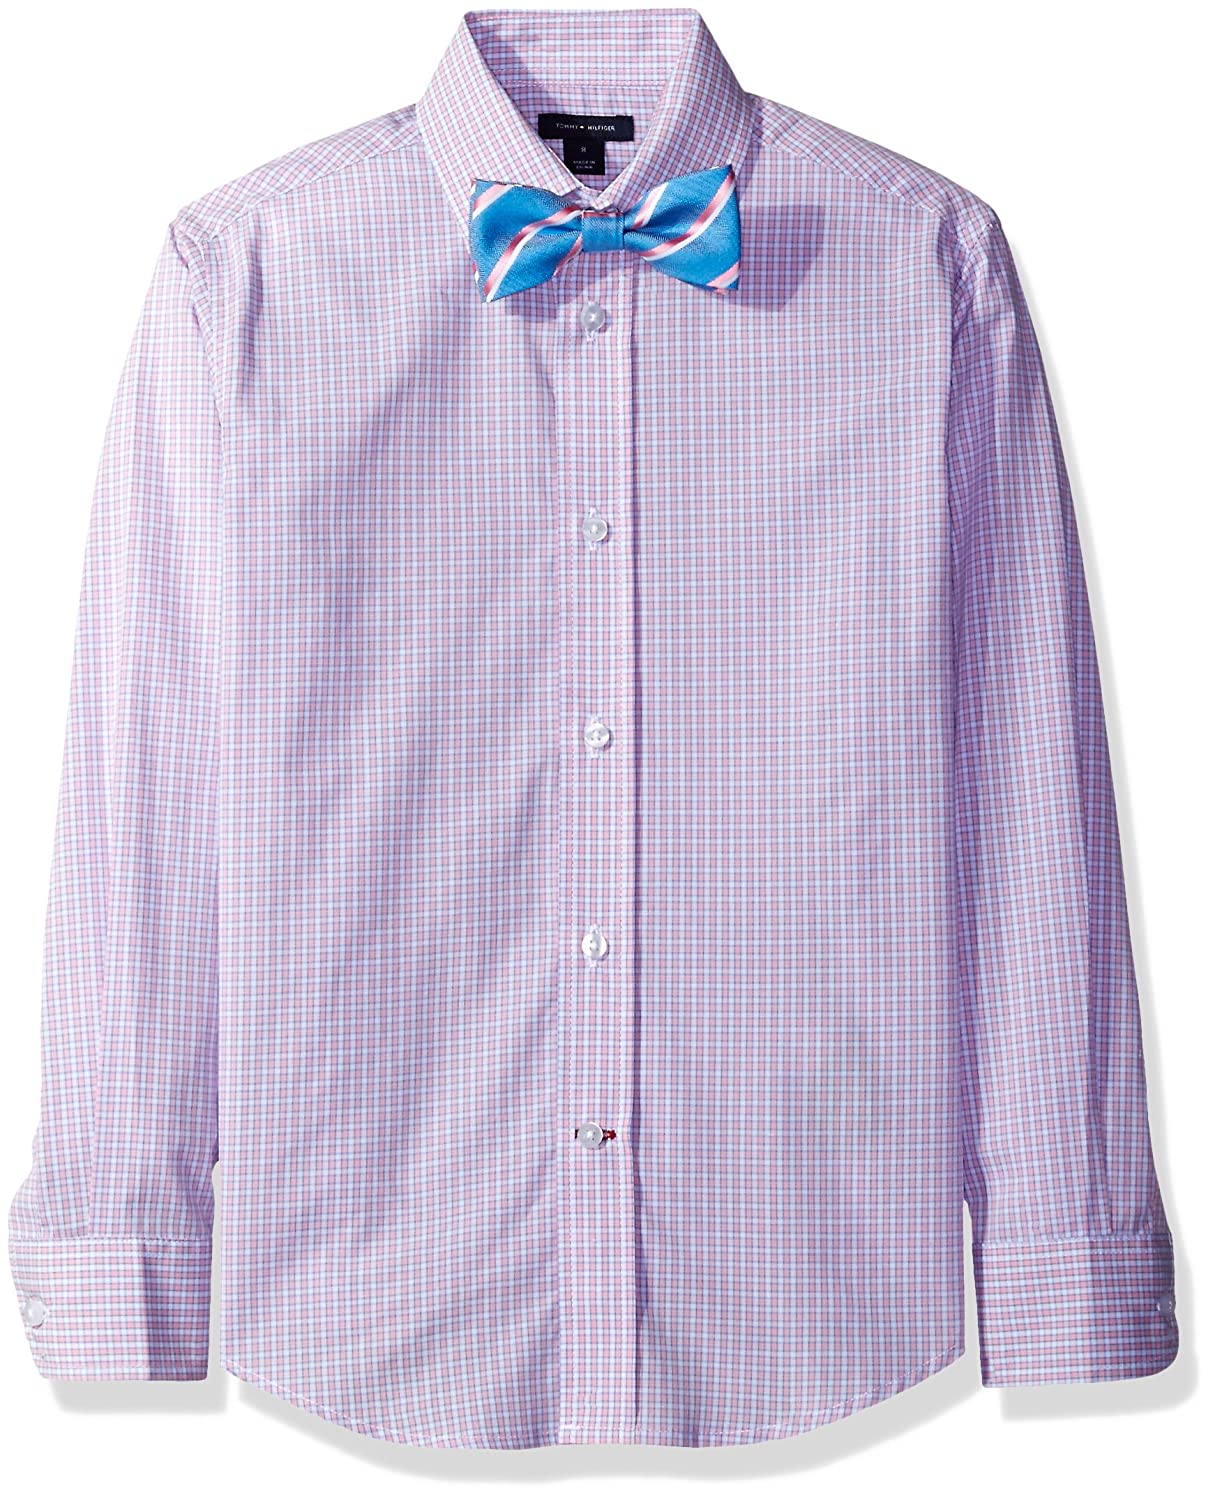 03b14c291da2 Amazon.com  Tommy Hilfiger Boys  Long Sleeve Mini Gingham Shirt with  Bowtie  Clothing